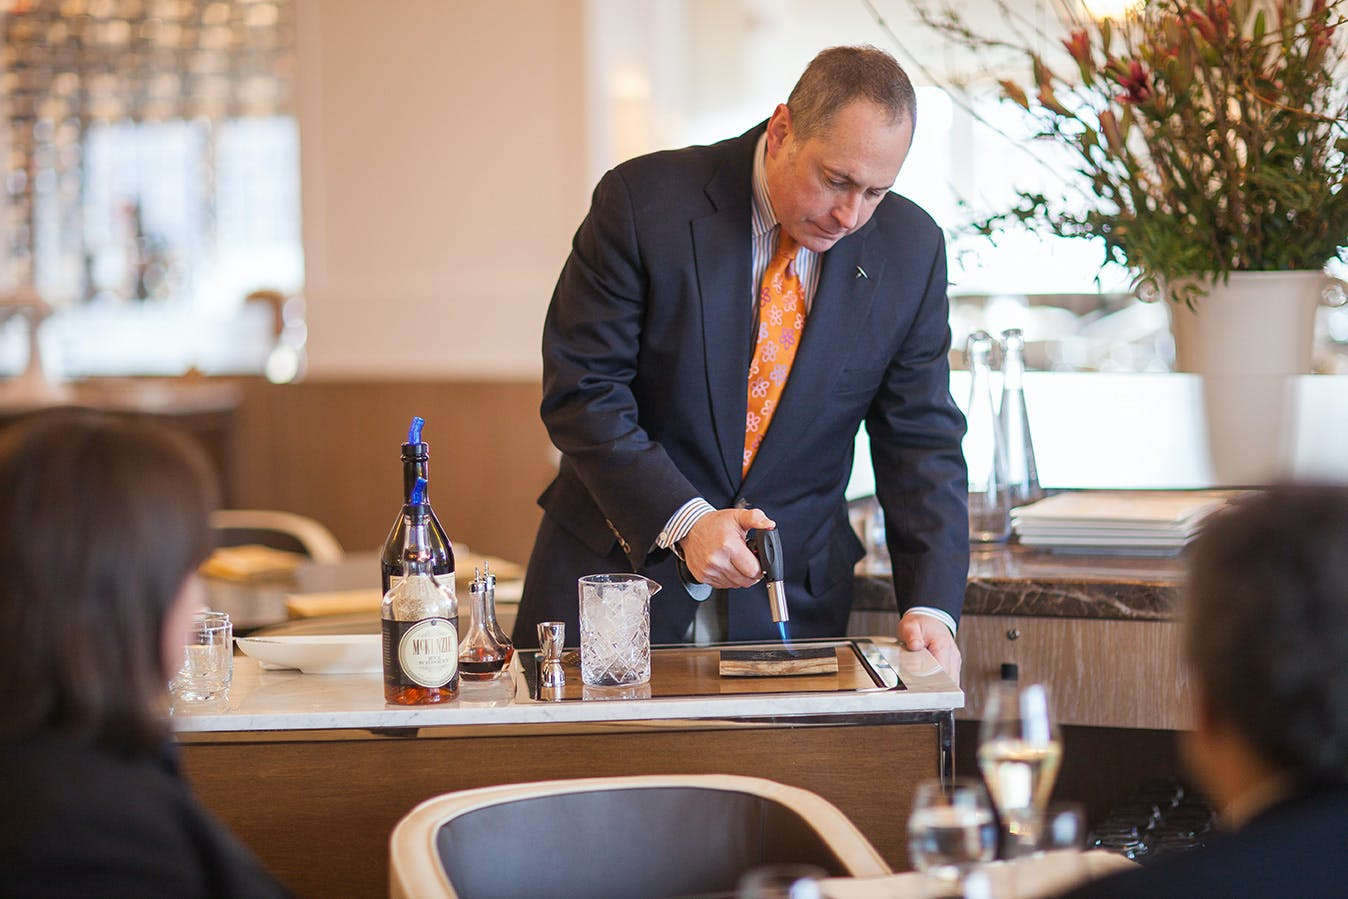 Tableside cart service, mixing cocktails at The Bocuse Restaurant at the CIA in Hyde Park, NY.